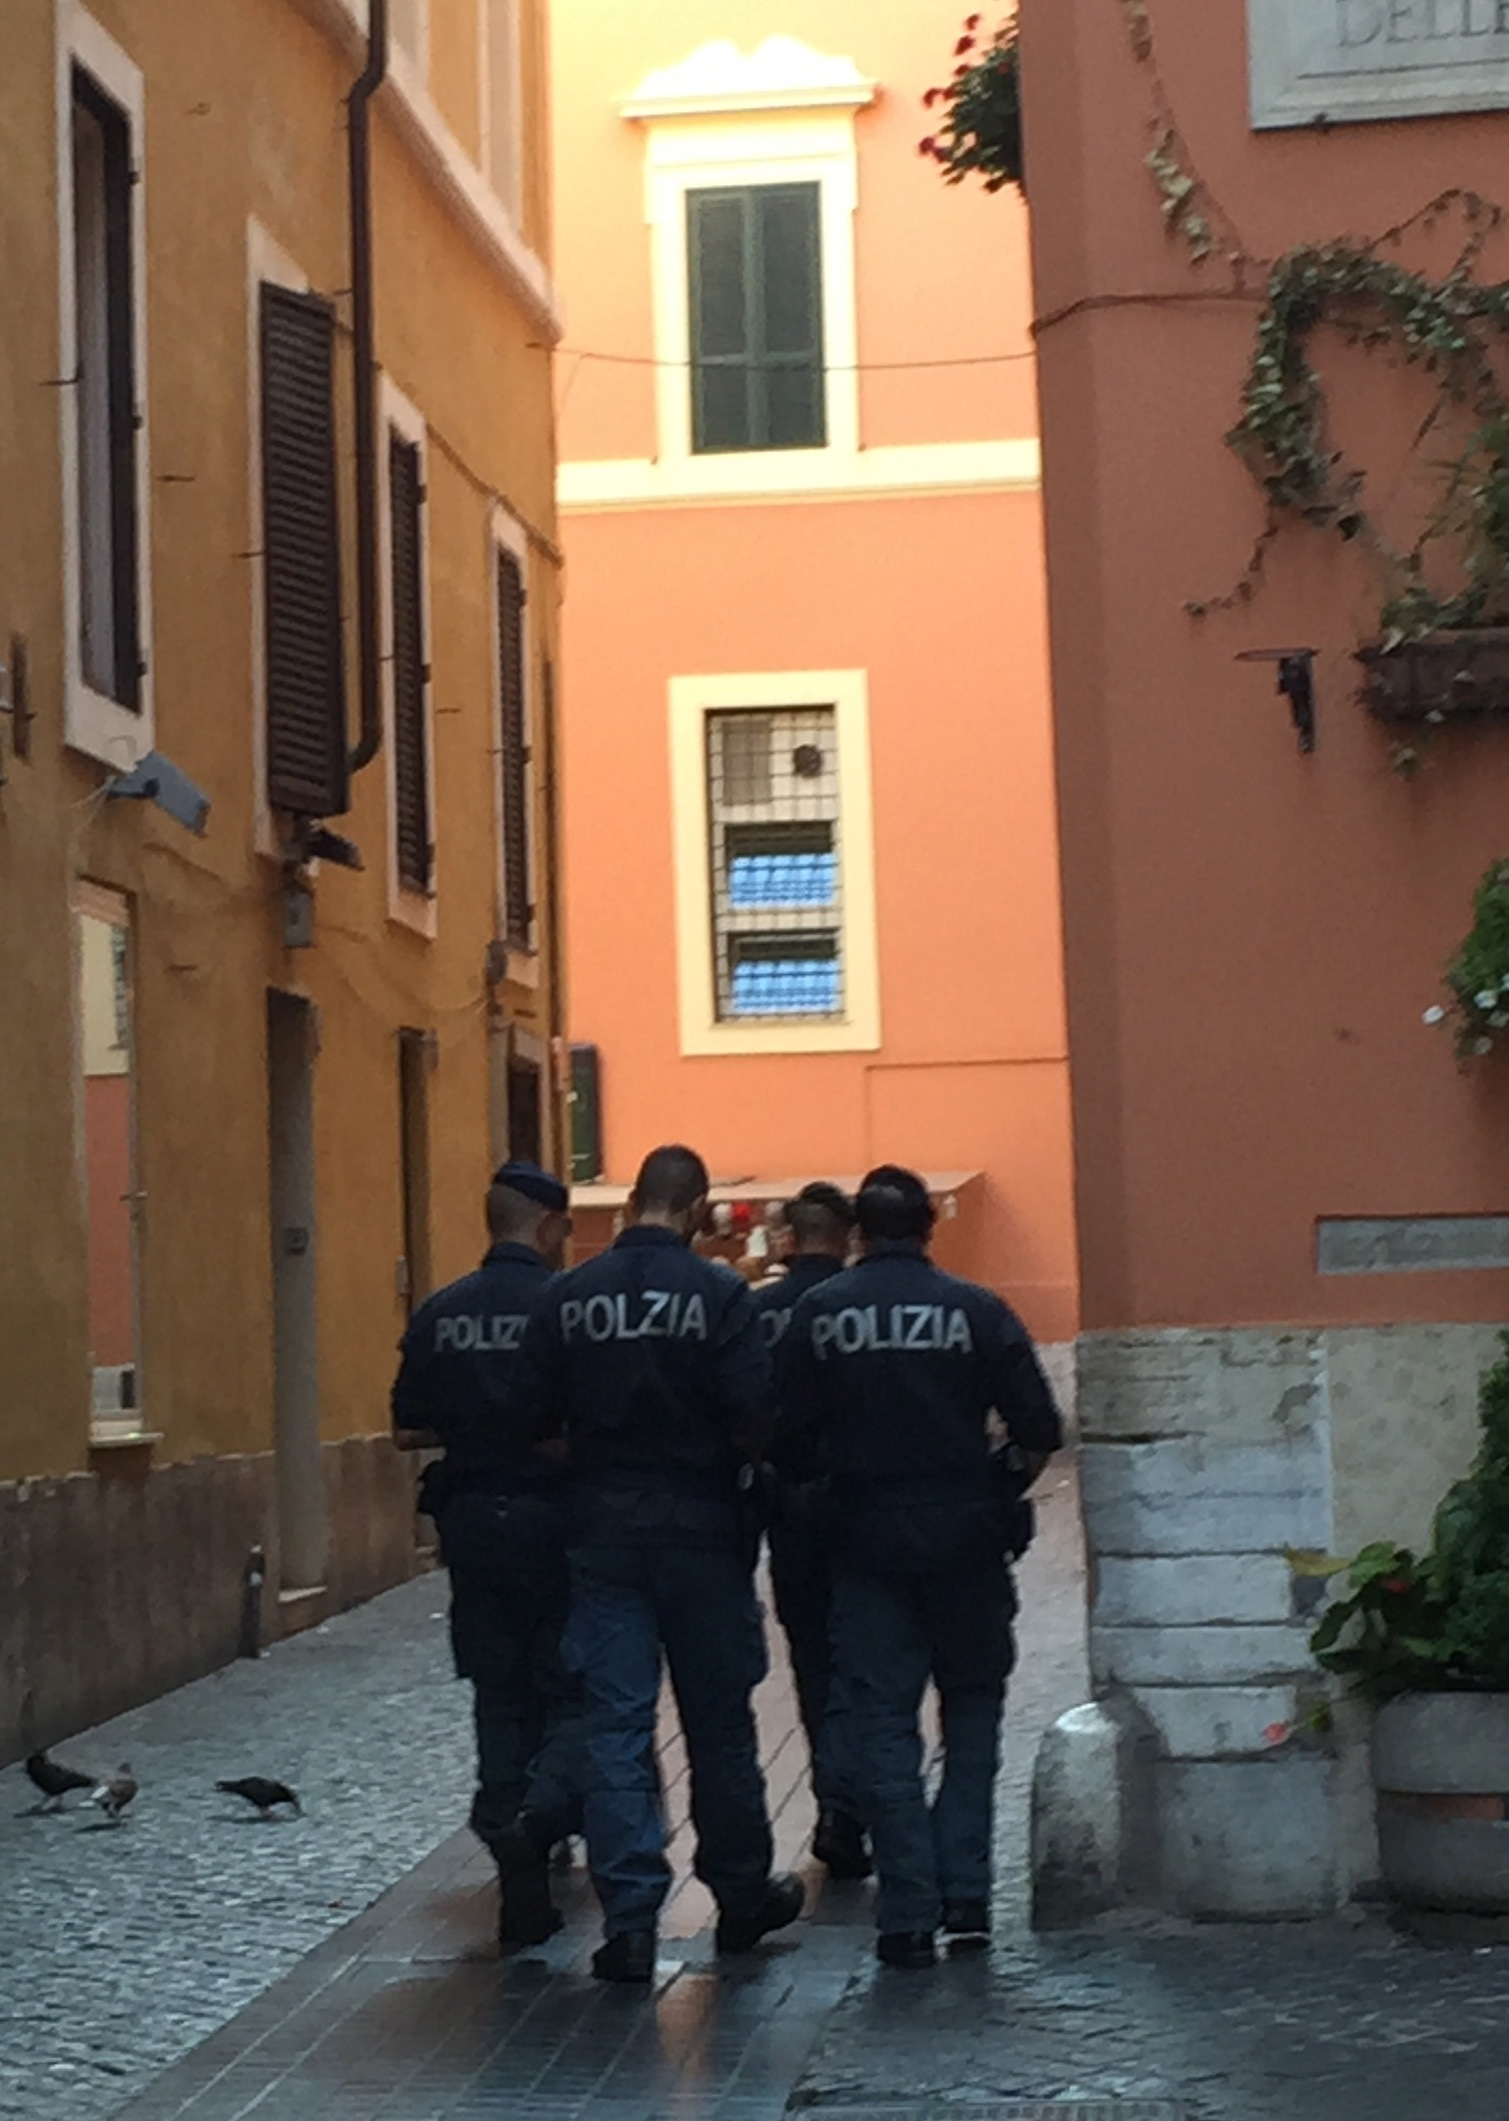 In Rome, the Polizia were actively patrolling tourist areas, such as this path to the Pantheon.